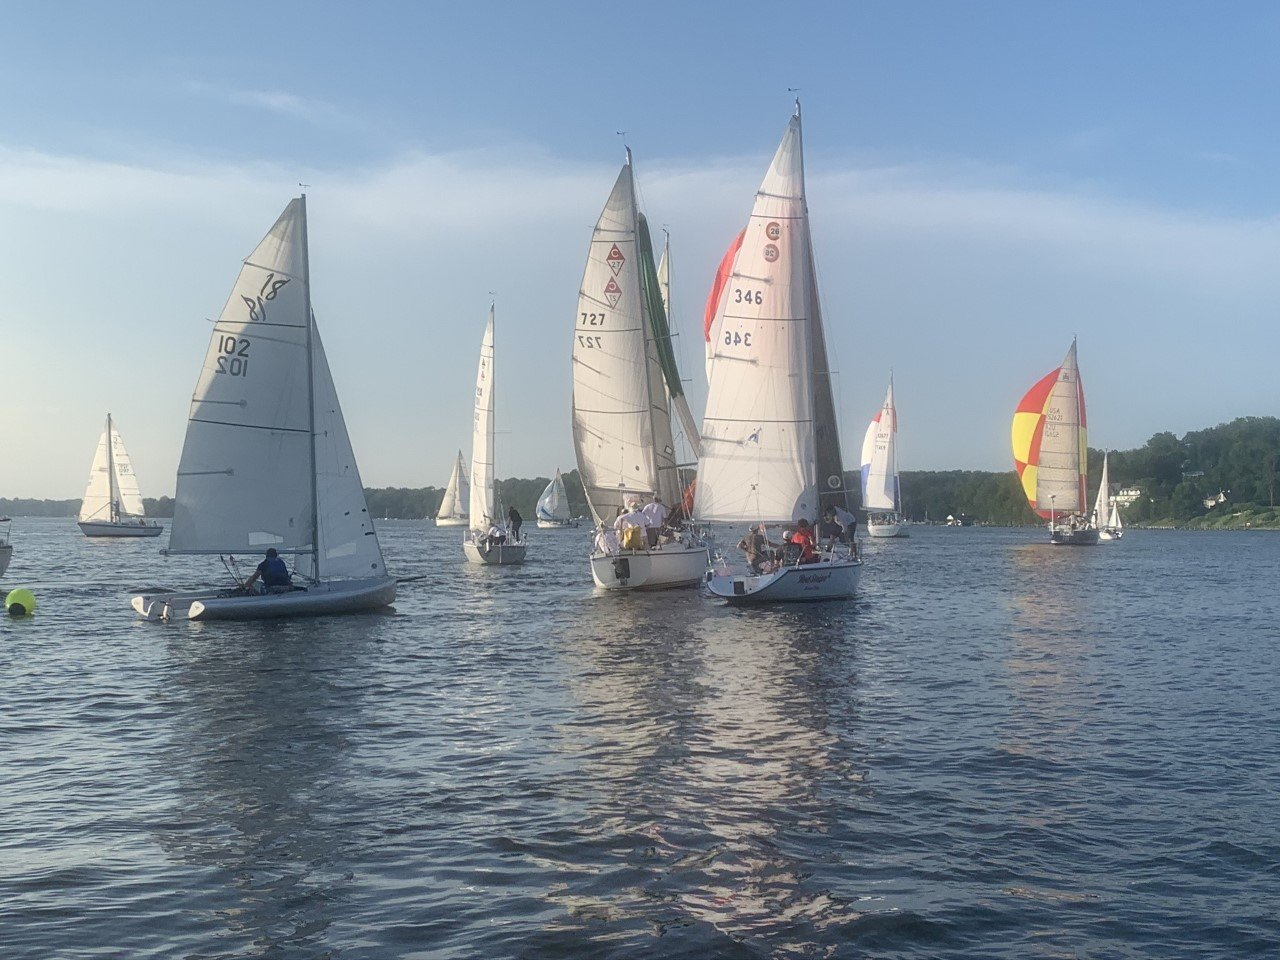 RBSA boats were photographed just after the windward mark rounding.